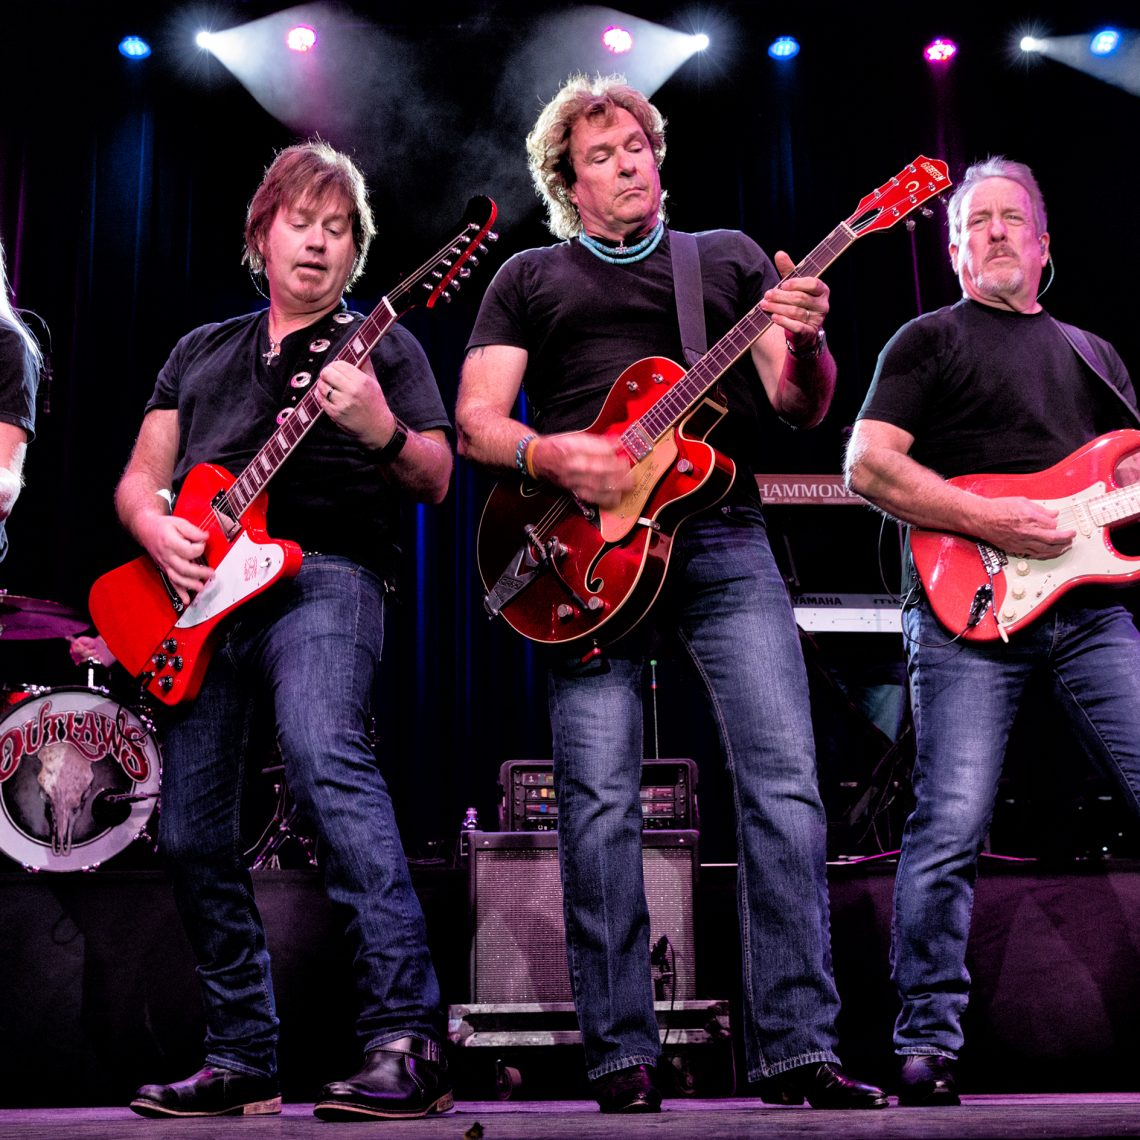 THE OUTLAWS – New DIXIE HIGHWAY Studio Album Released February 28th on SPV